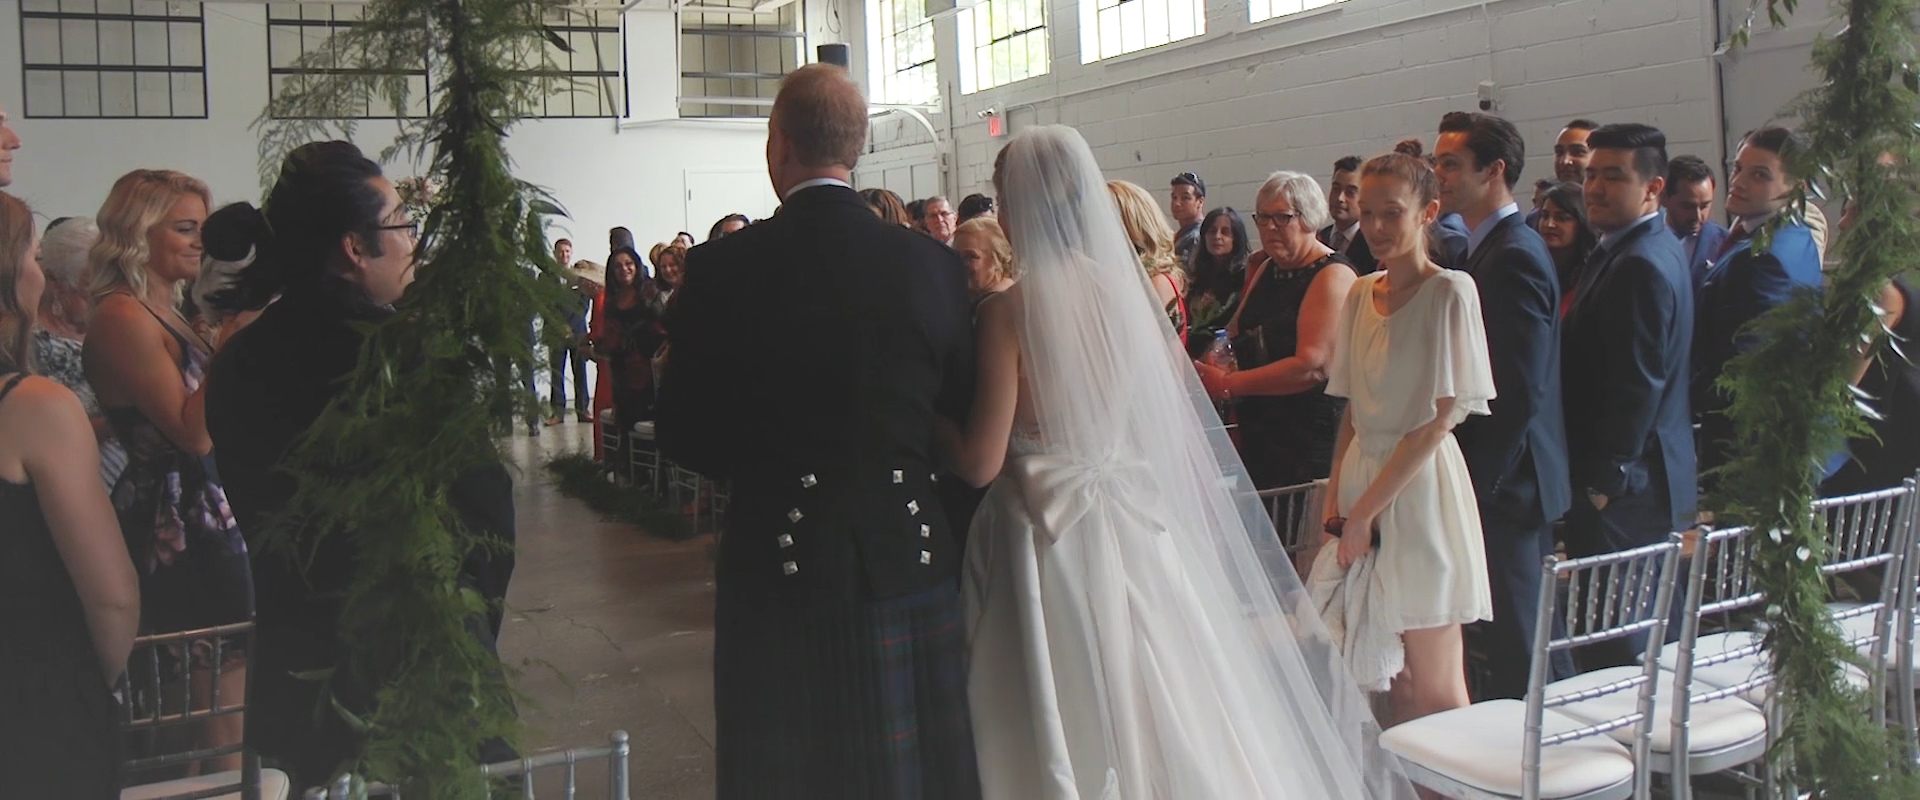 An image of a father walking his daughter down the aisle to be wed; taken from a Toronto Wedding Video